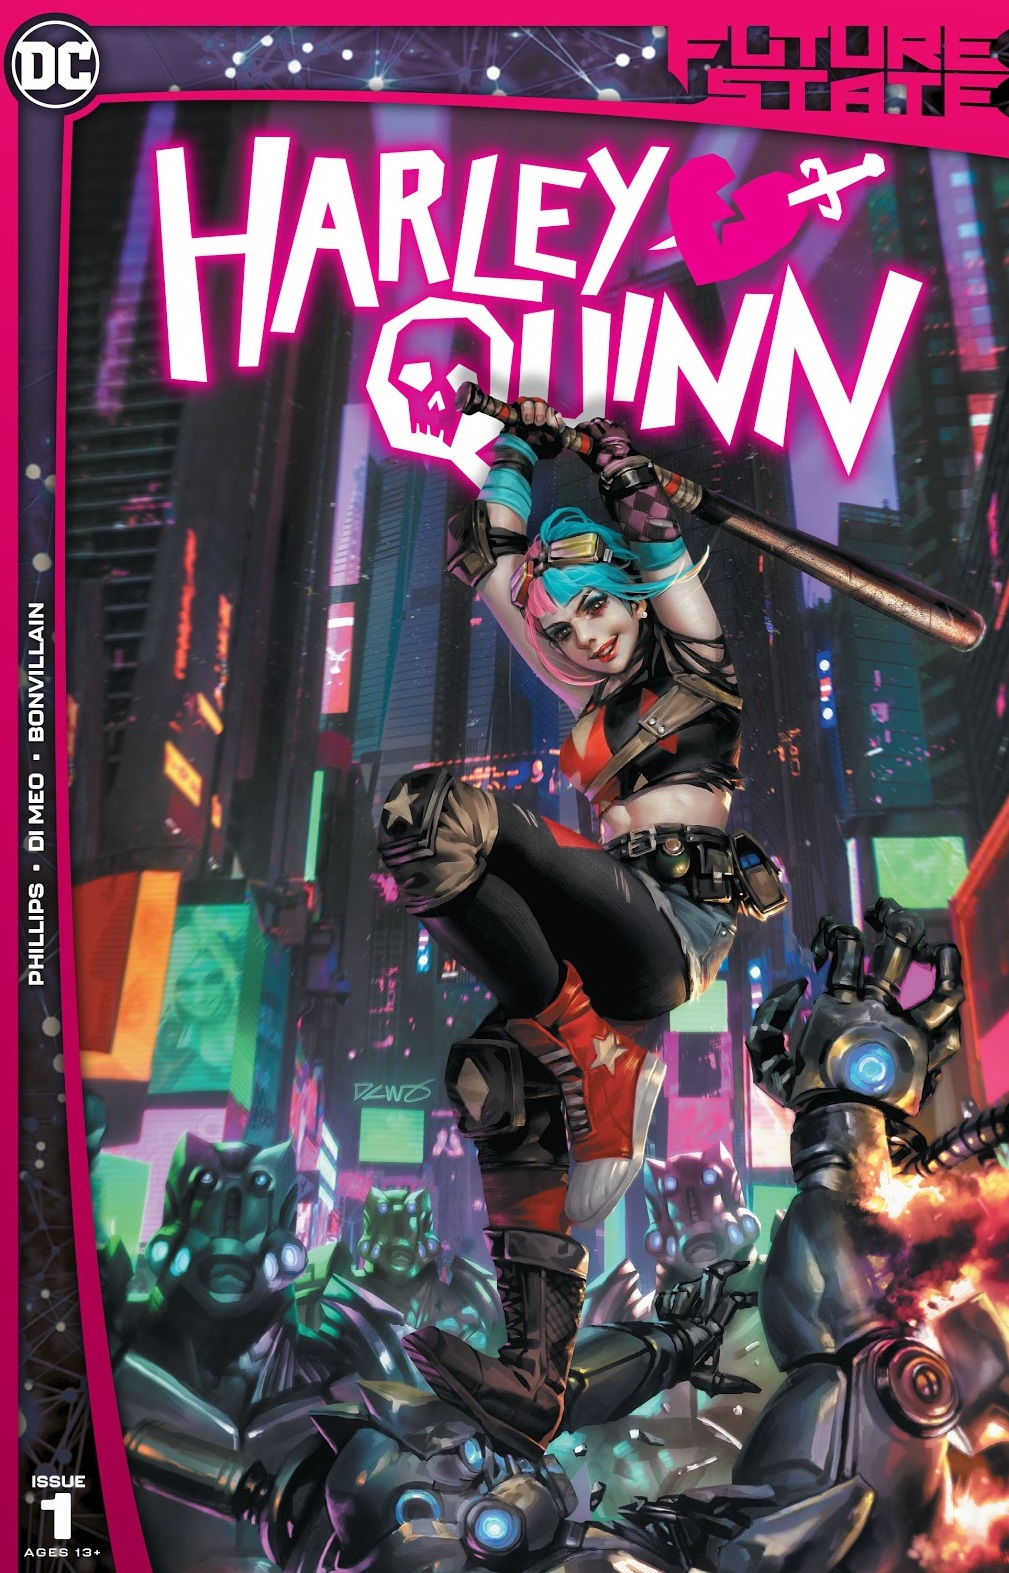 future state harley quinn issue 1 review